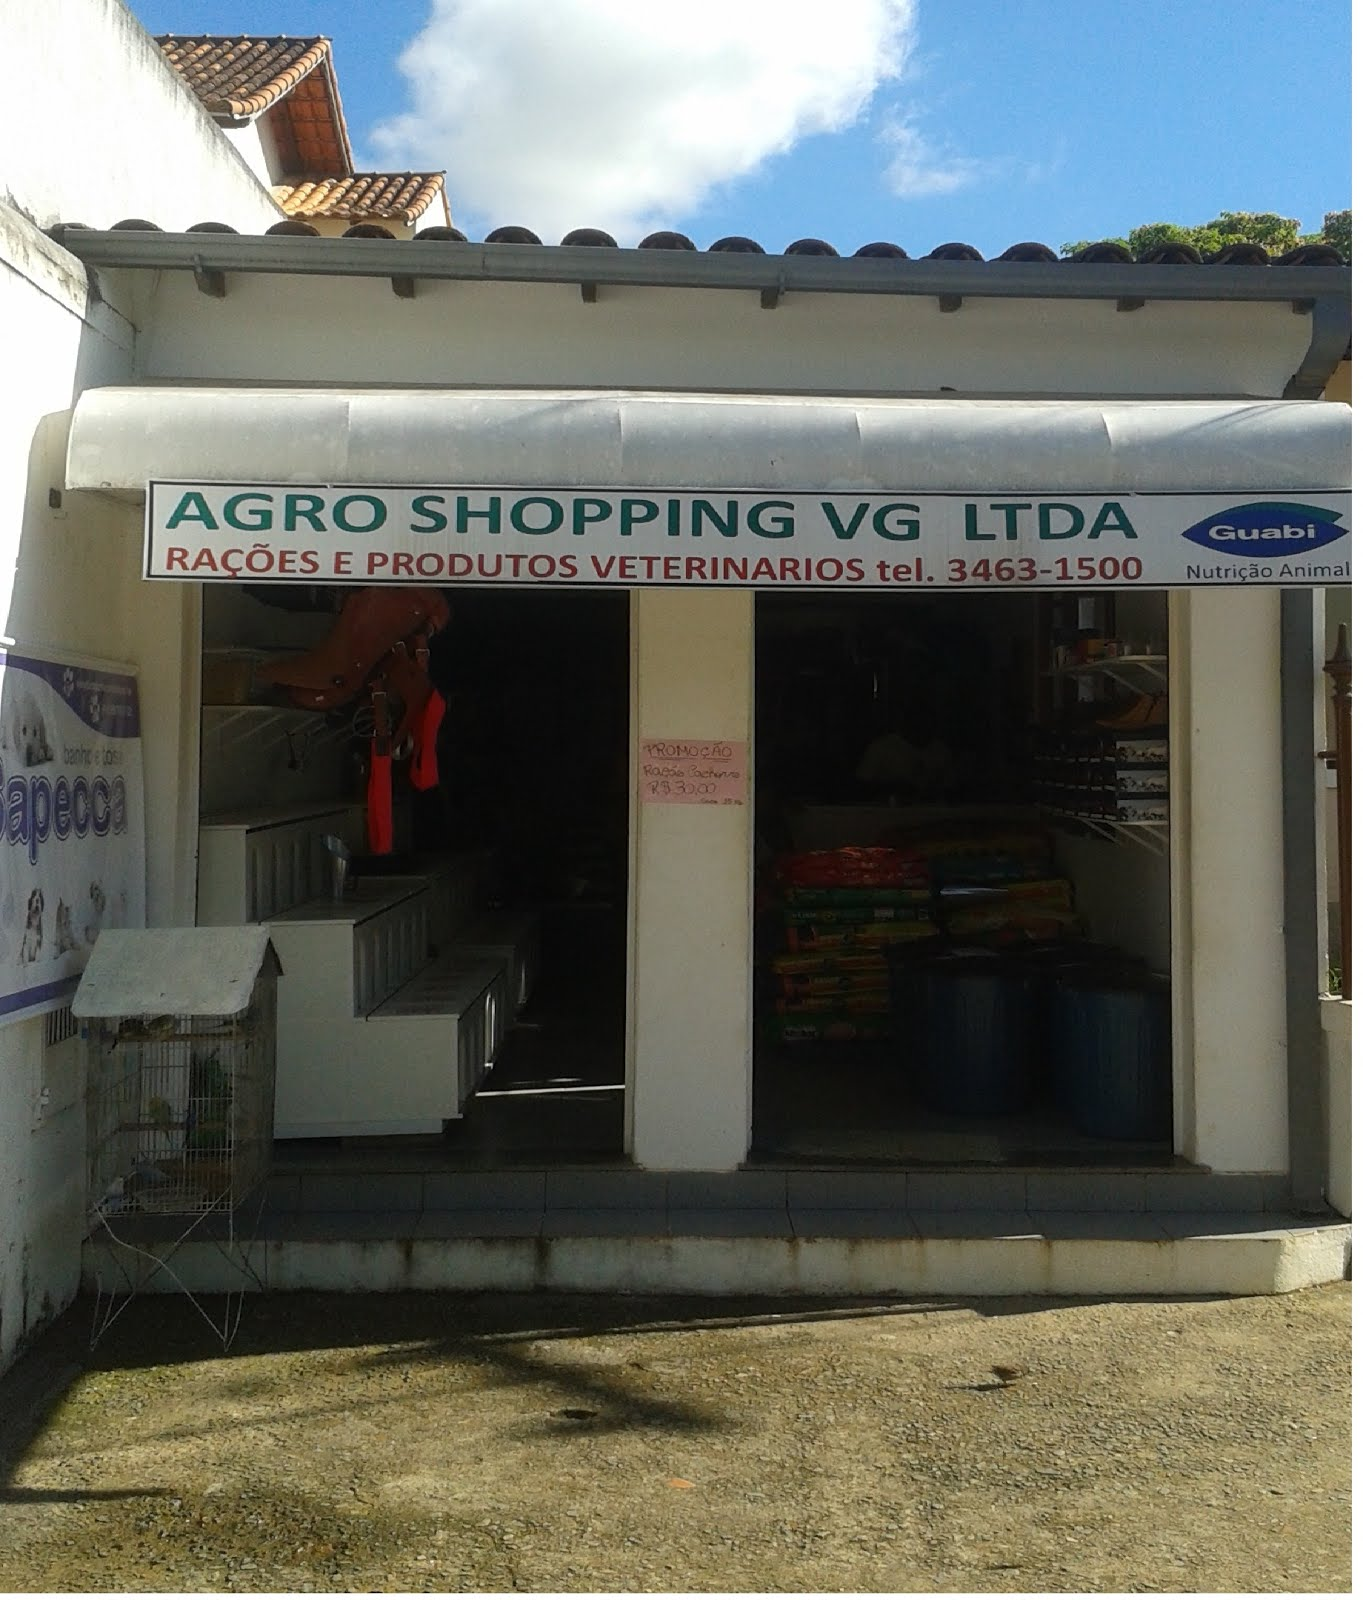 AGRO SHOPPING VG Adm do Gilberto